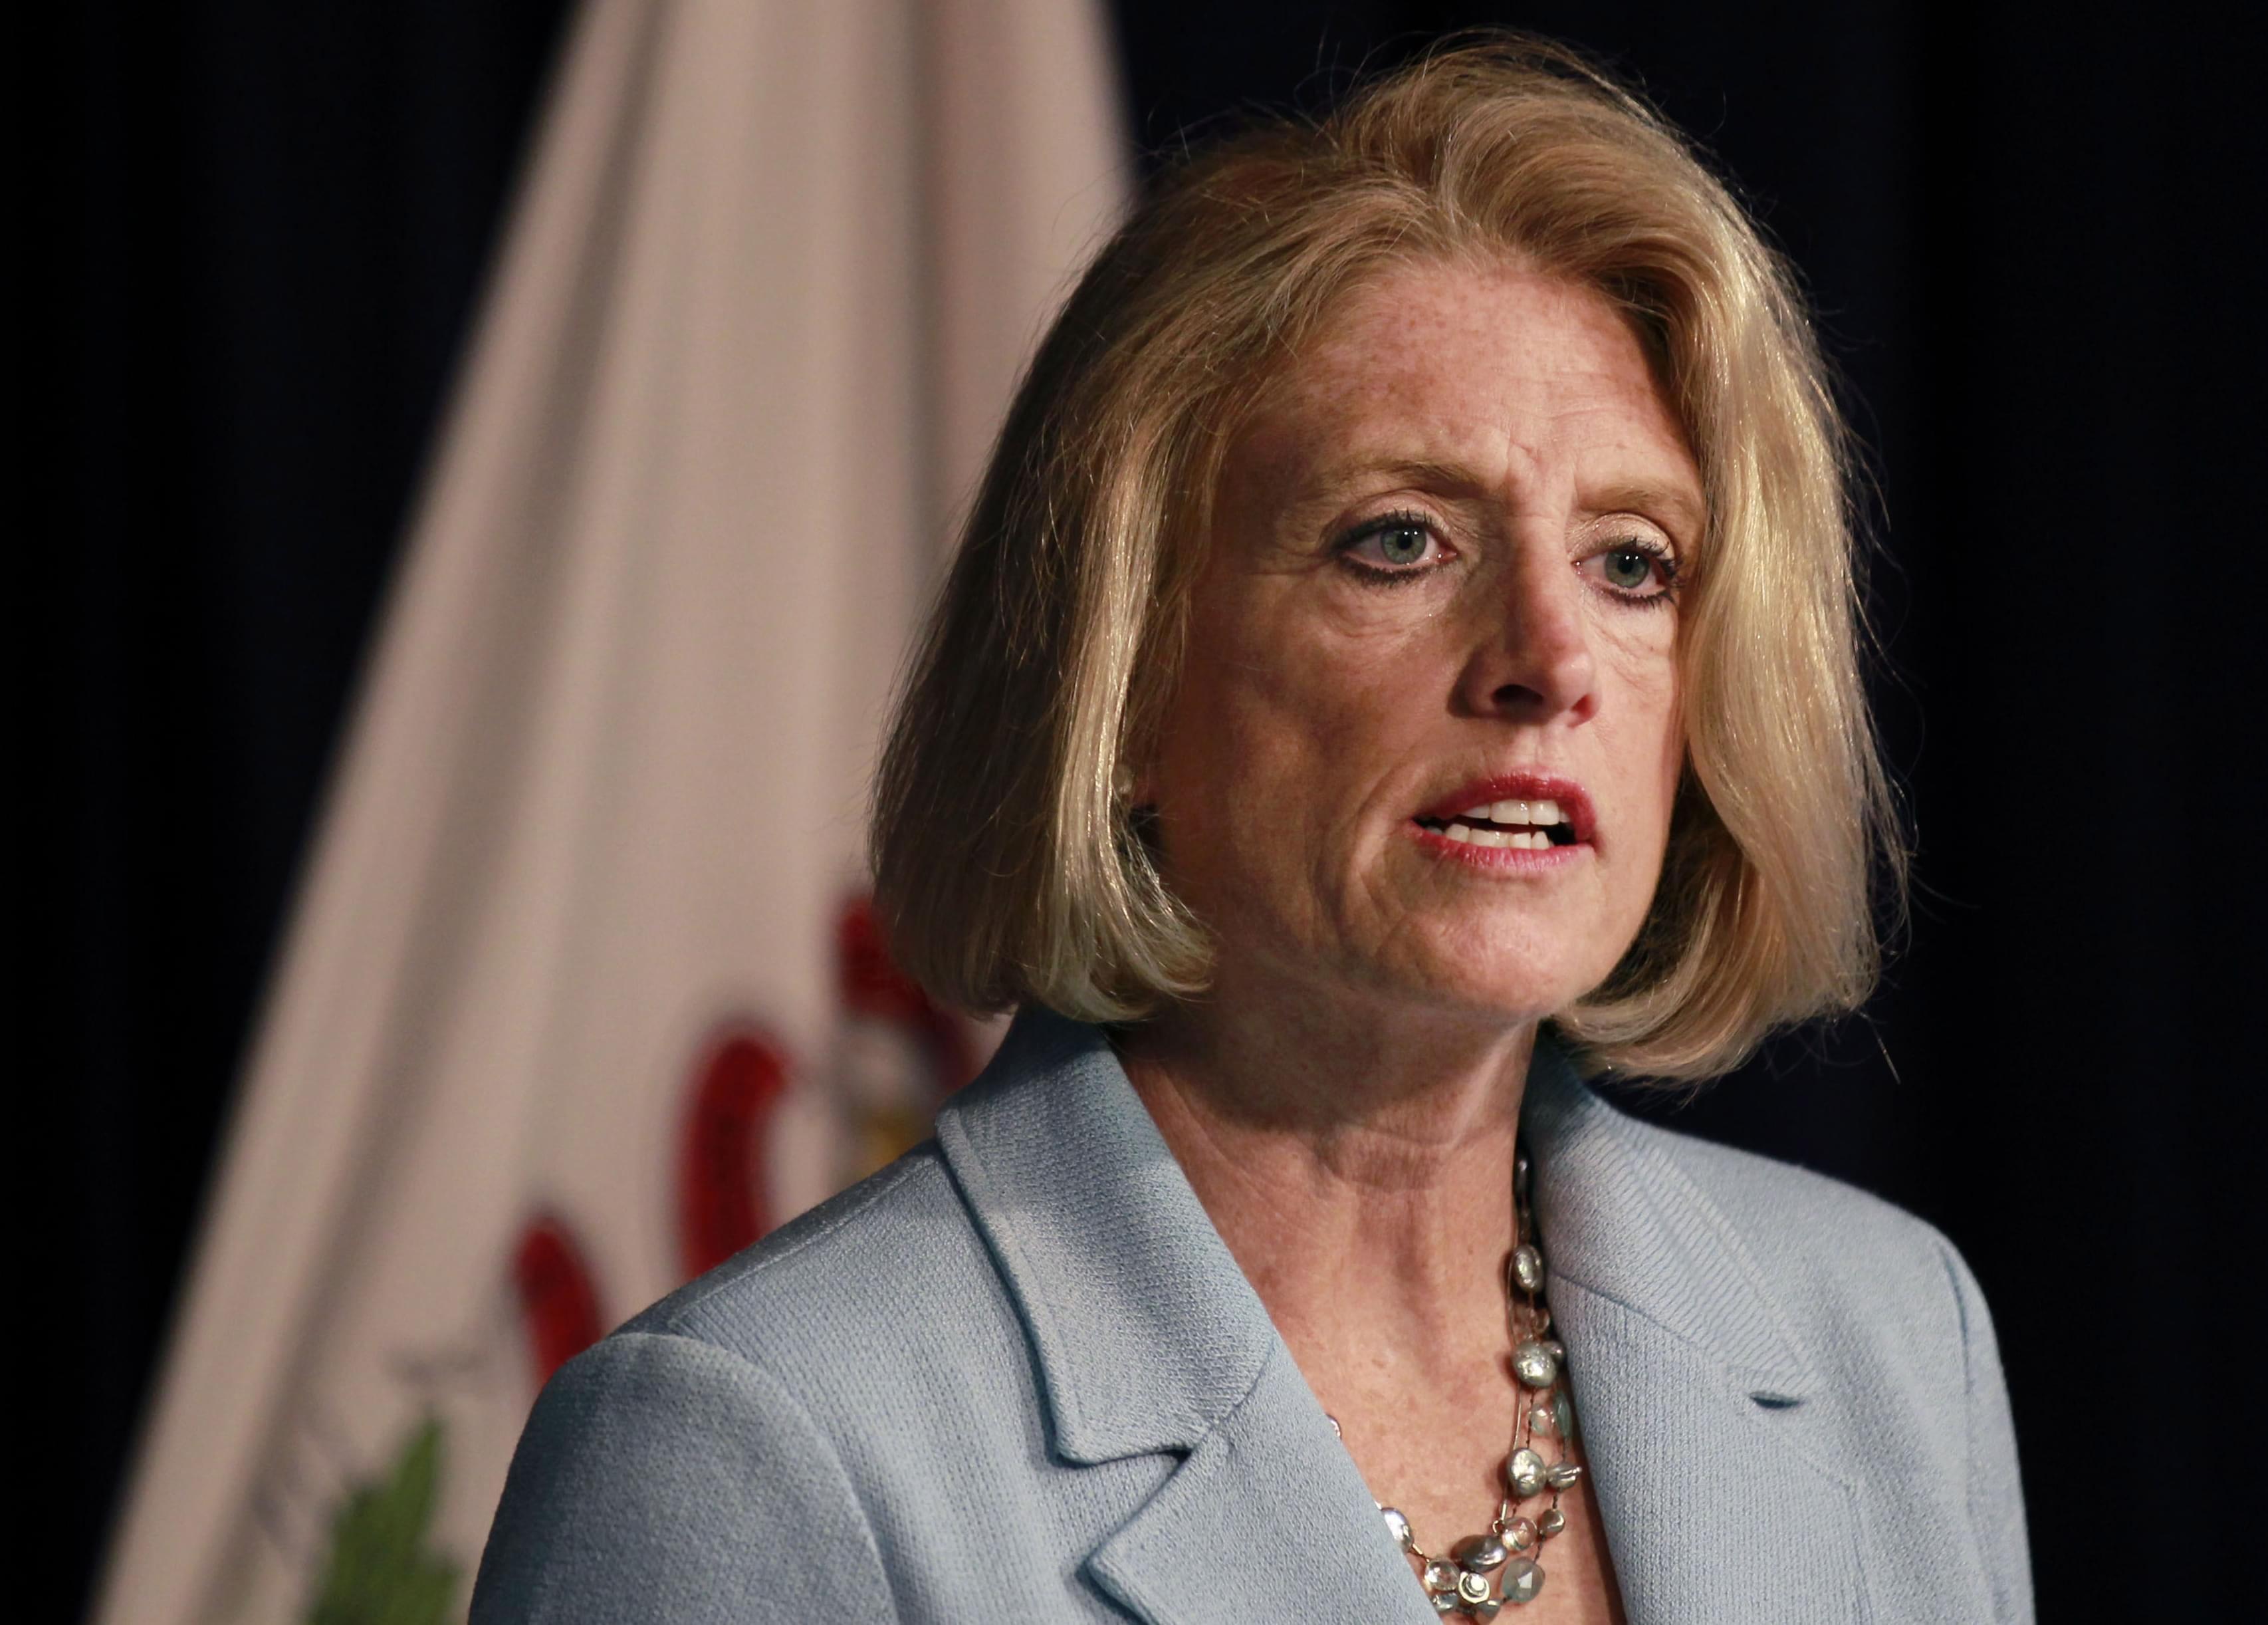 In this June 10, 2015 file photo, Illinois state Comptroller Leslie Munger speaks at a news conference in Chicago